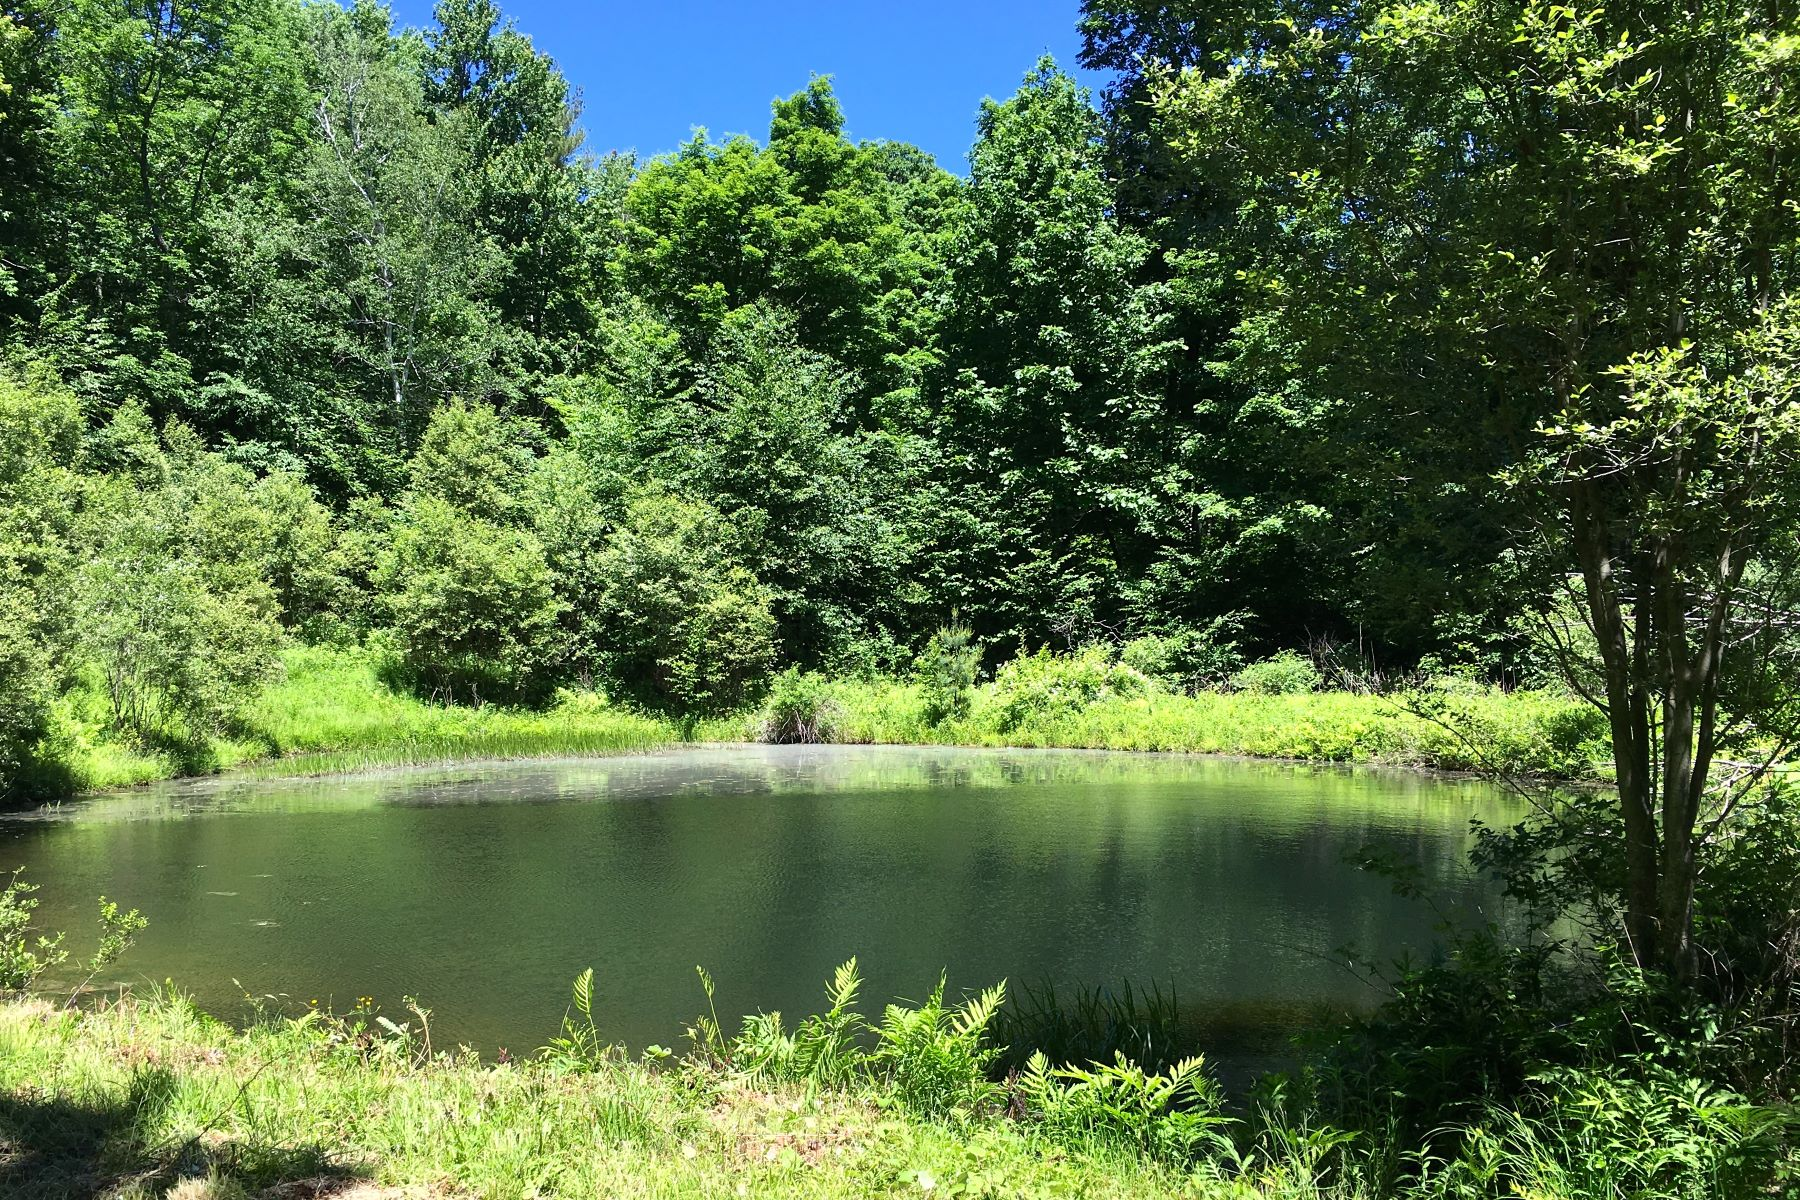 Land for Sale at Wonderful 12+ Acre Parcel with Pond 388 Harrington Dr Austerlitz, New York 12017 United States